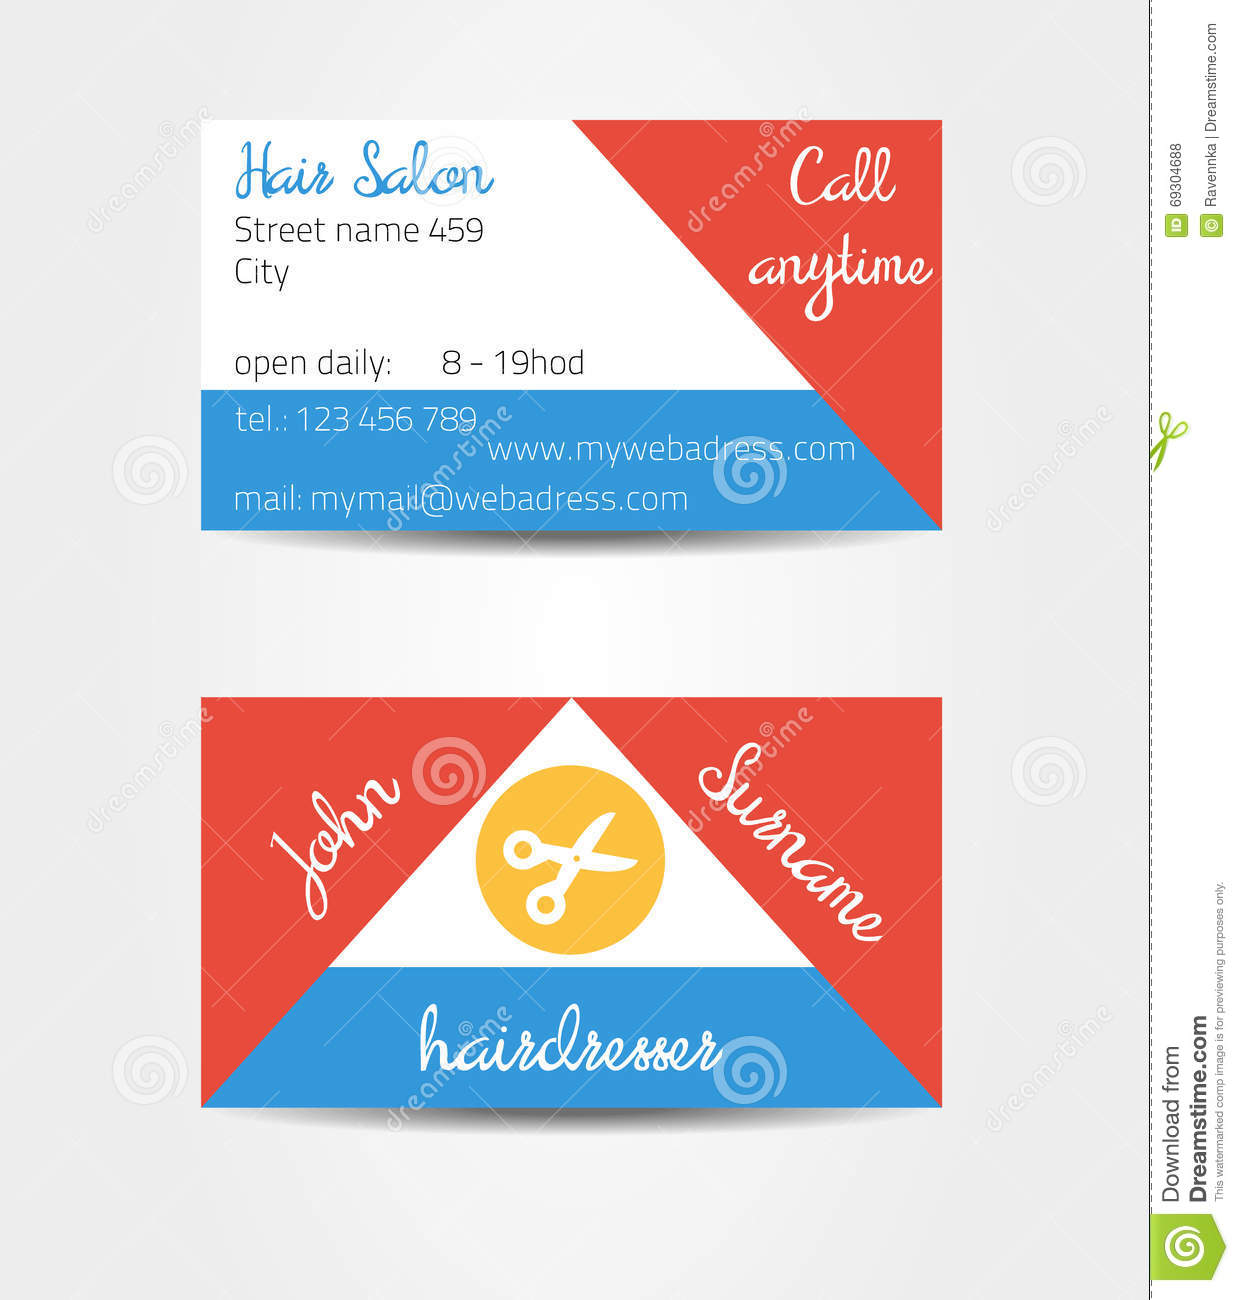 2 sided business cards templates free - two sided eccentric and extraordinary business cards